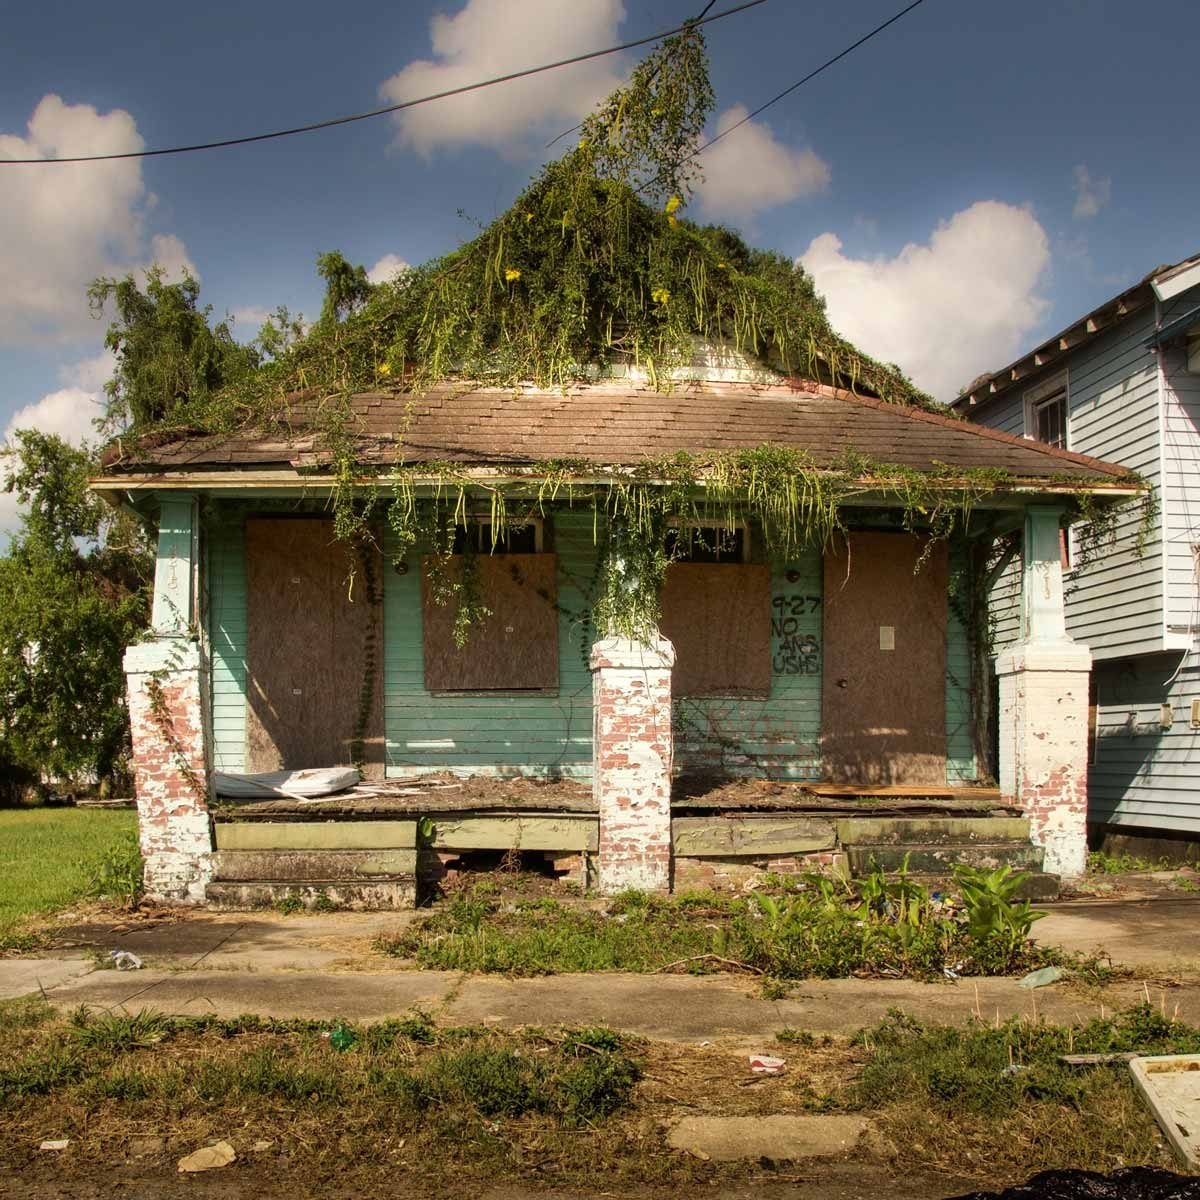 Abandoned-New-Orleans-home-10-years-after-Hurricane-Katrina